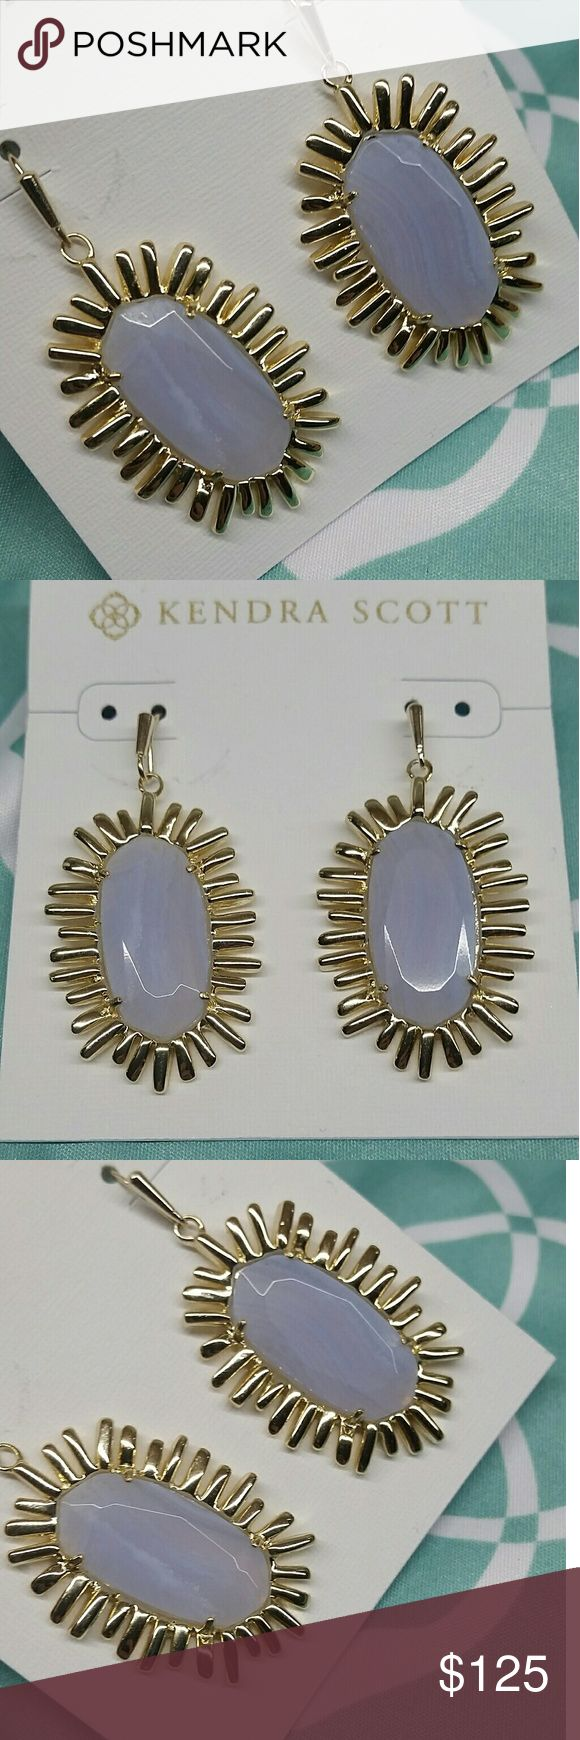 BLUE LACE AGATE GOLD MARIAH EARRINGS KENDRA SCOTT MARIAH EARRINGS  GOLD PLATED SETTINGS BLUE LACE AGATE STONES CUSTOM, COMES WITH DUST BAG EXCELLENT CONDITON  BEAUTIFUL EARRINGS BEAUTIFUL AGATE LINES IN THE STONES  COMES WITH: DUST BAG EARRING BACKS WHITE EARRING BOARD CARE CARD  SHIPS NEXT OR SAME DAY Kendra Scott Jewelry Earrings